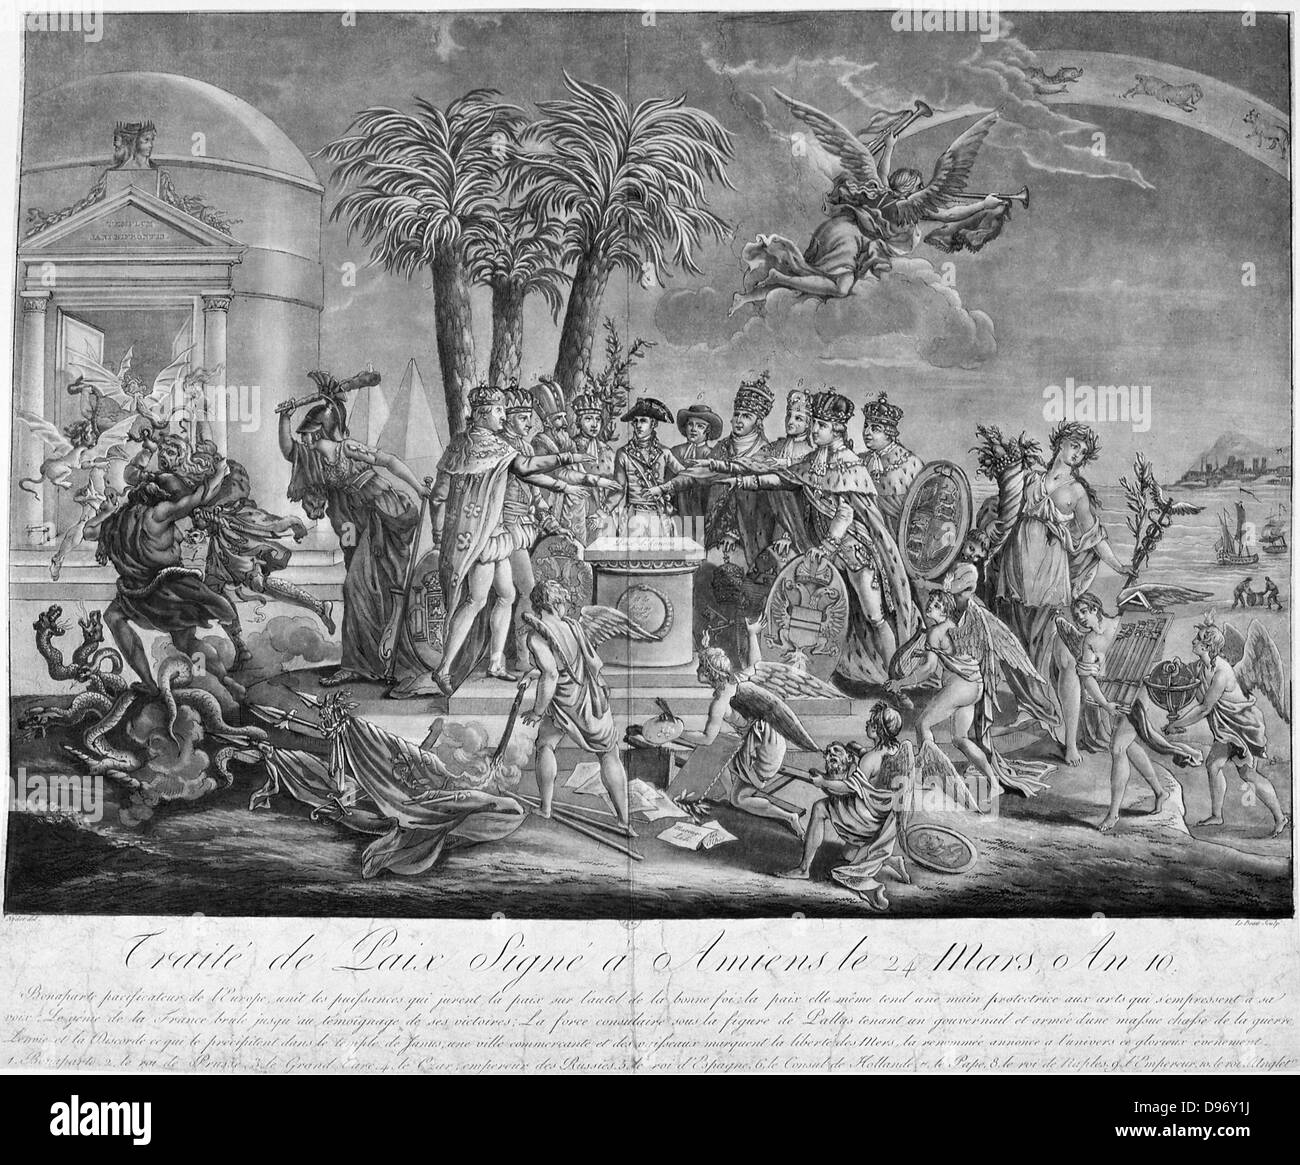 Engraving celebrating the signing of the Treaty of Amiens 25 March 1802, peace treaty between Britain and France. - Stock Image